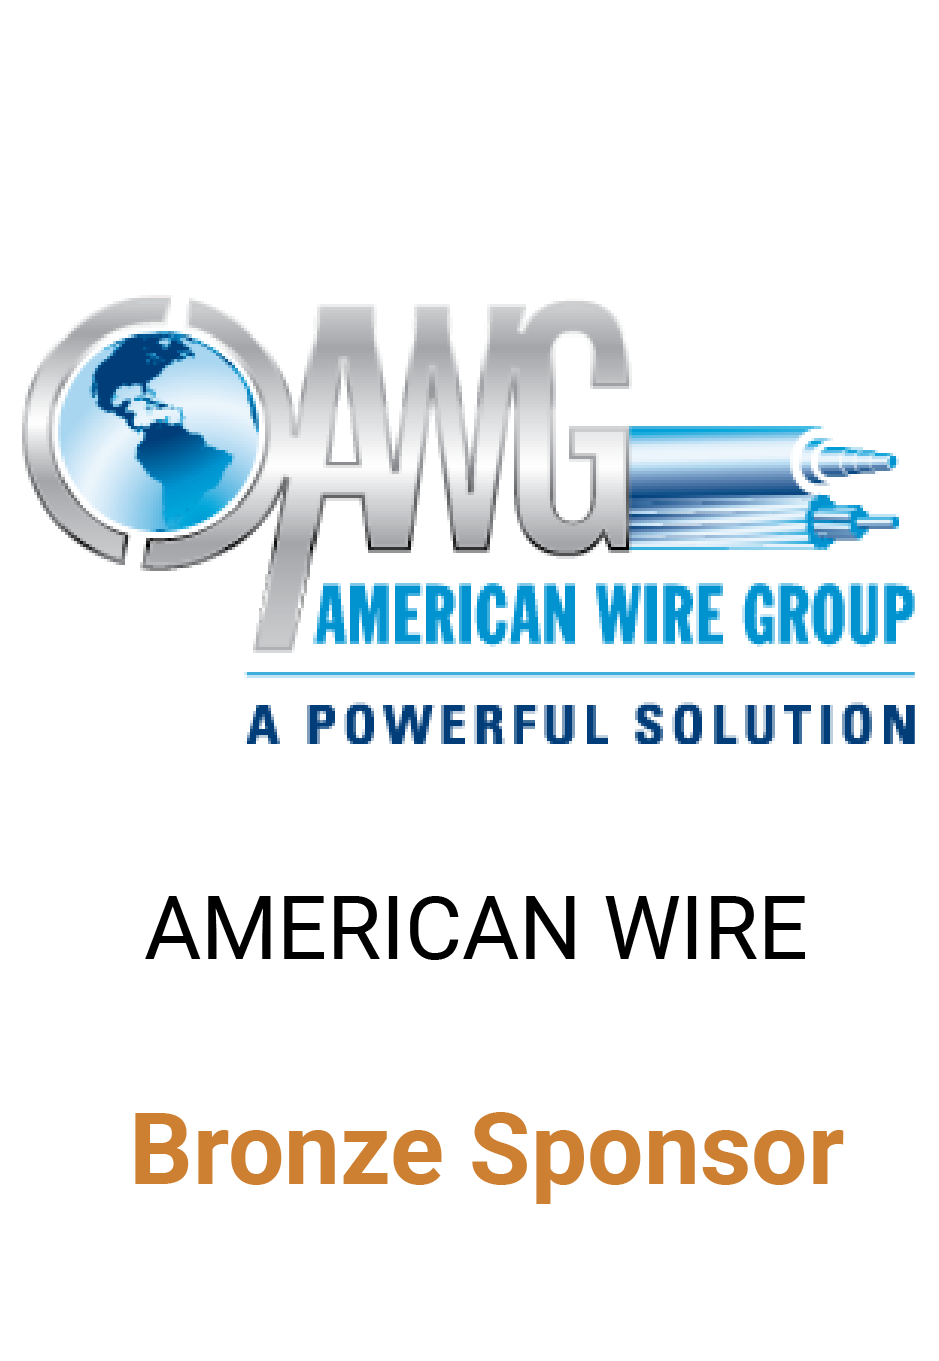 American Wire